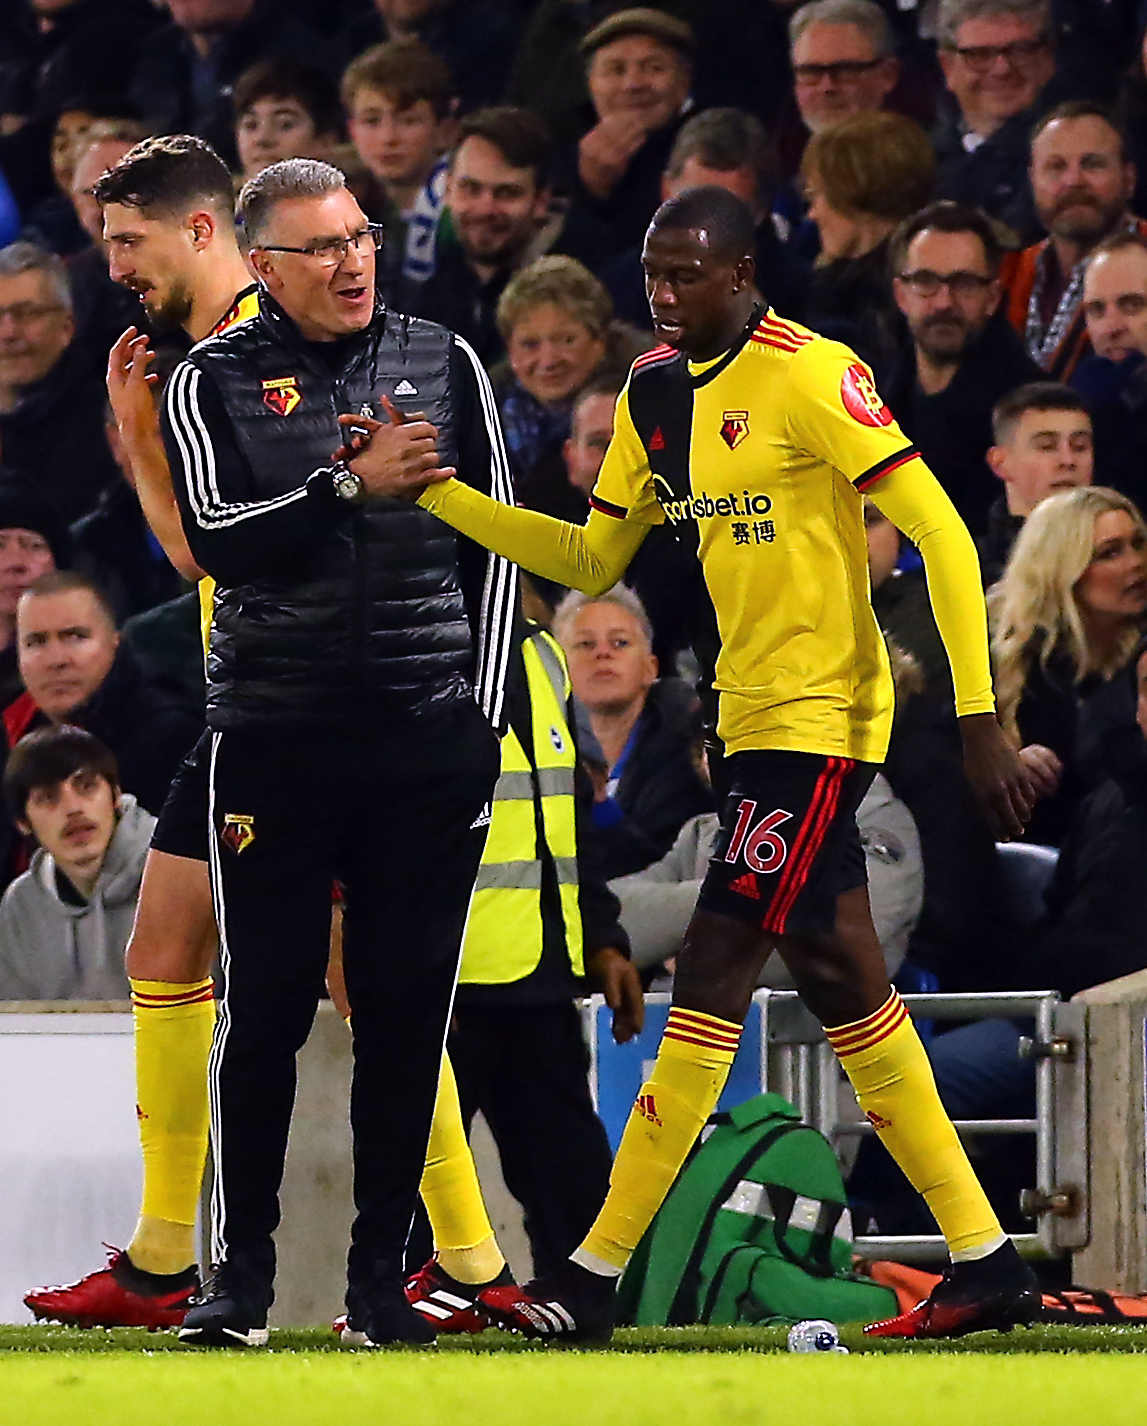 Watford's Abdoulaye Doucoure celebrates scoring his side's first goal of the game with manager Nigel Pearson